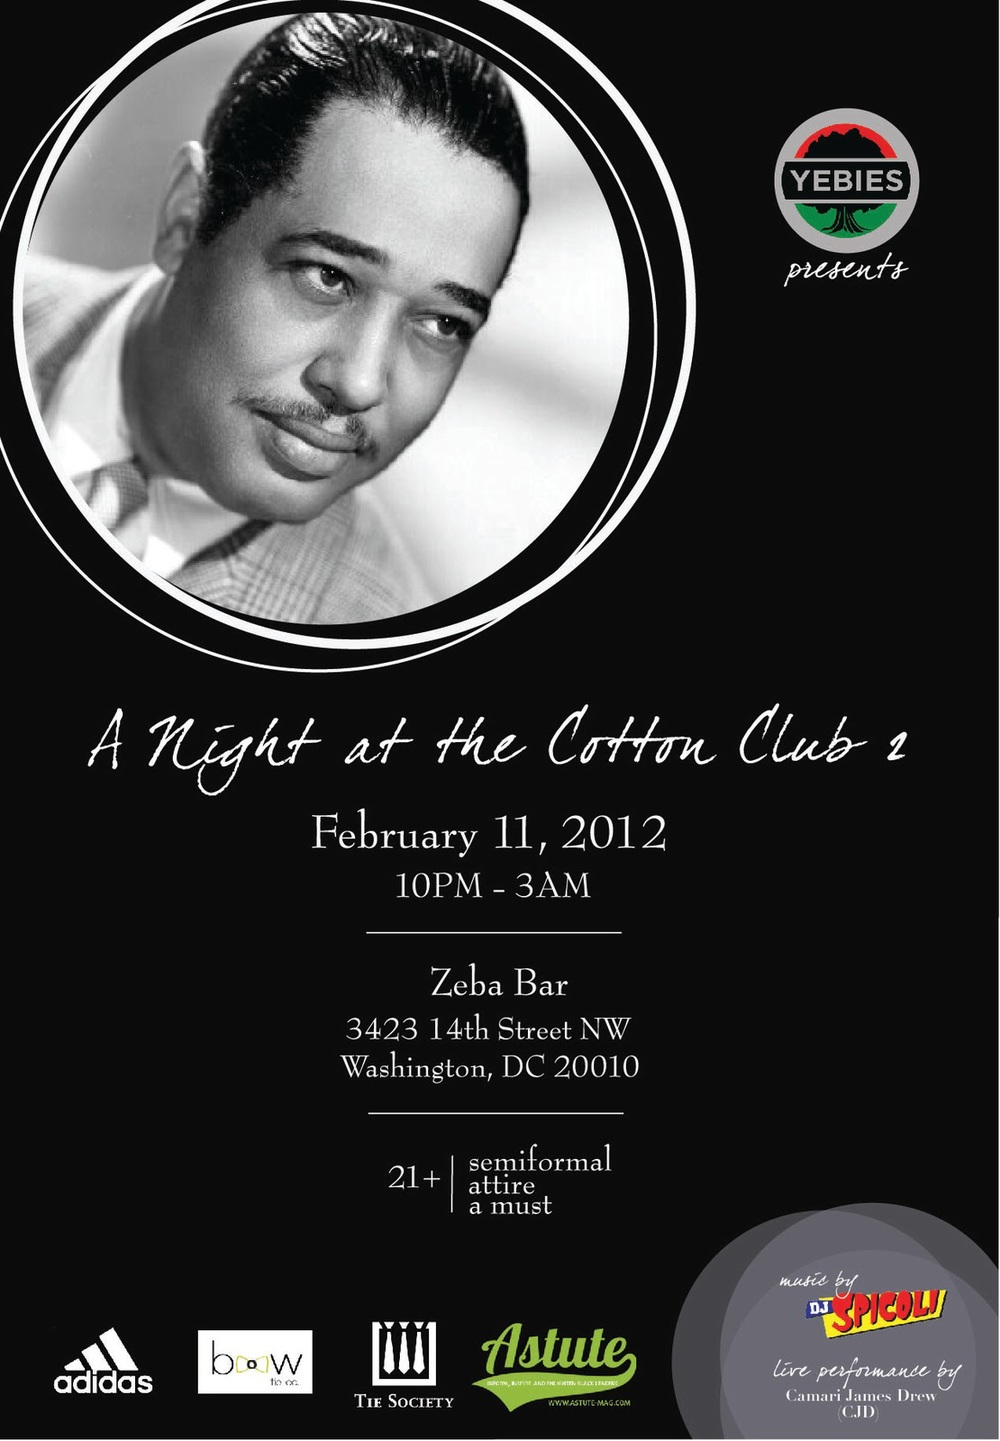 A Night At The Cotton Club 2 (#CottonClub2)